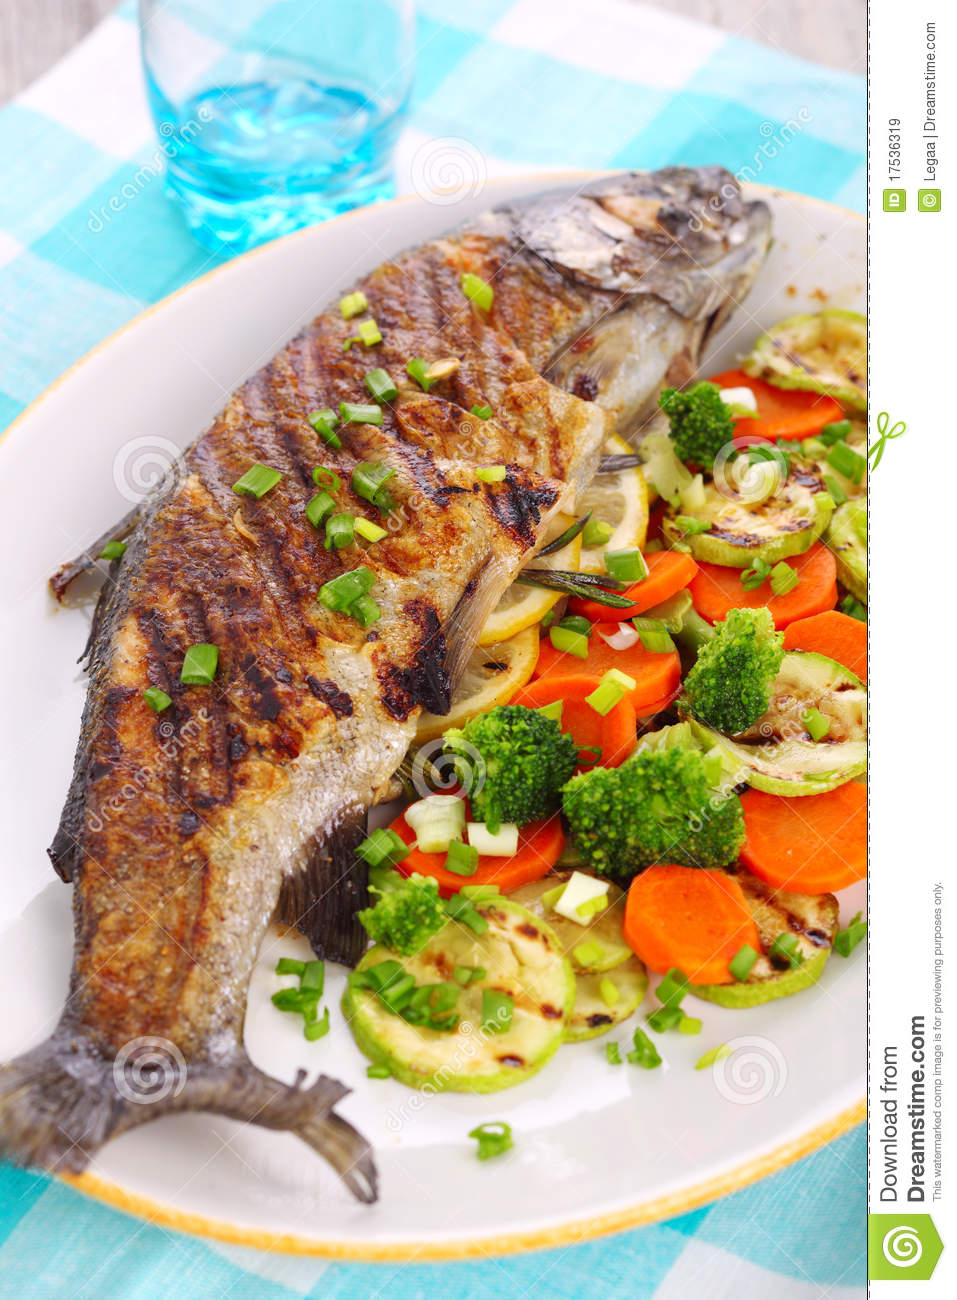 grilled fish with vegetables royalty free stock images